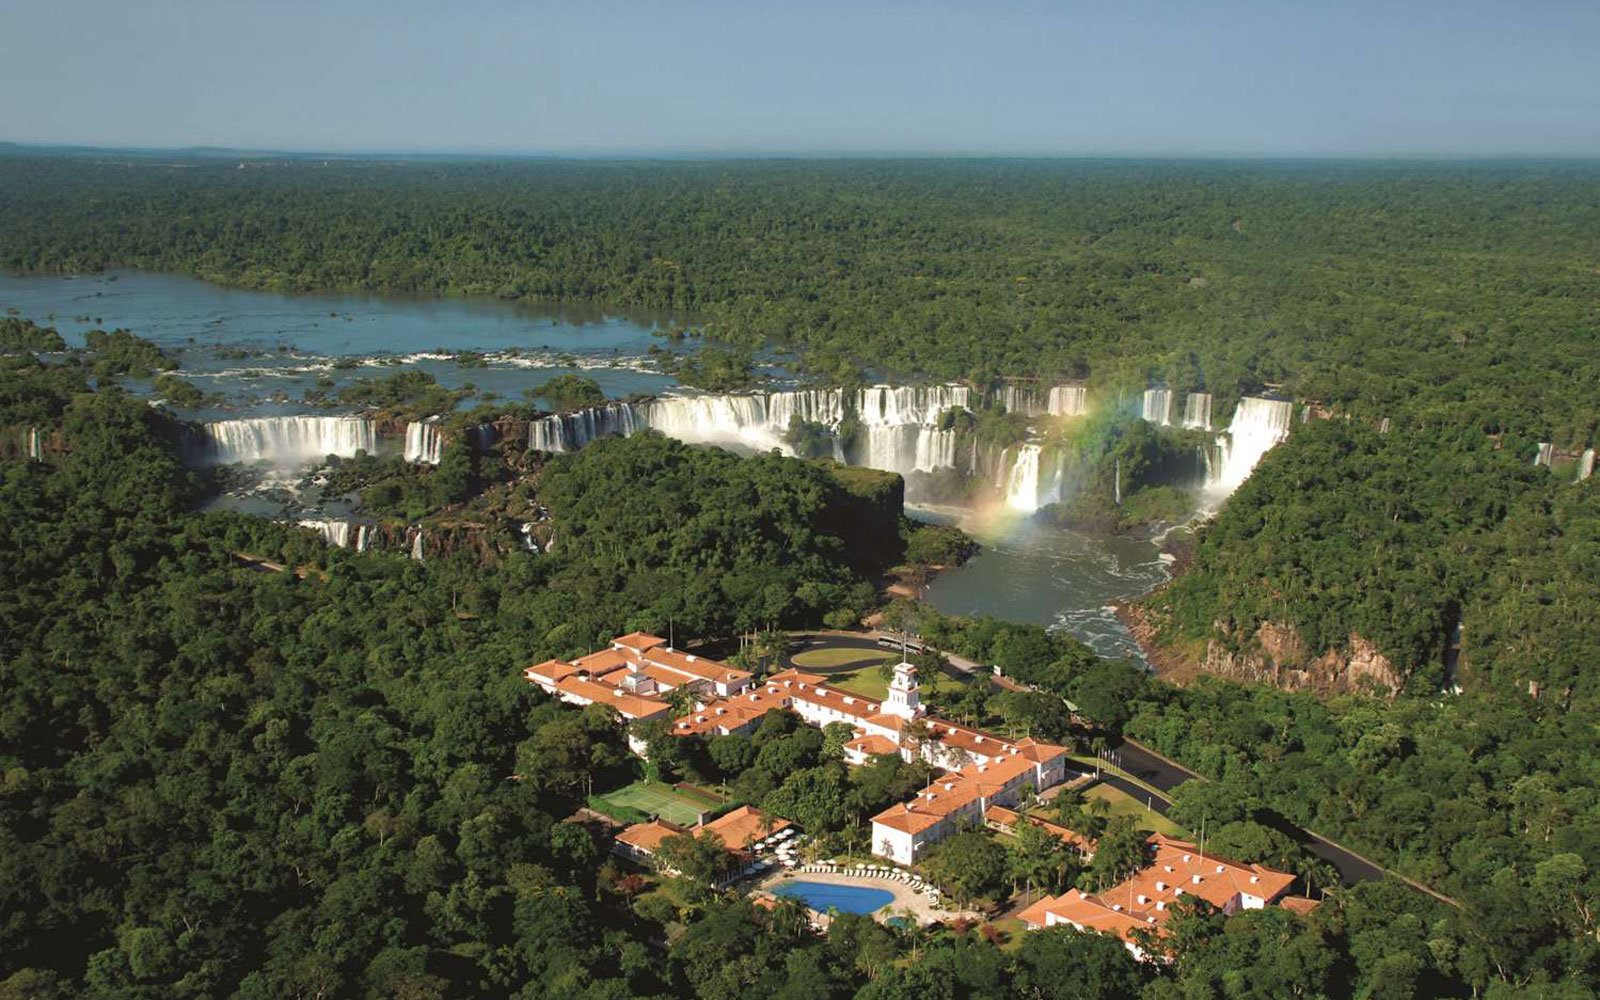 The Belmond Hotel Das Cataracts at the Iguassu Falls in Brazil.